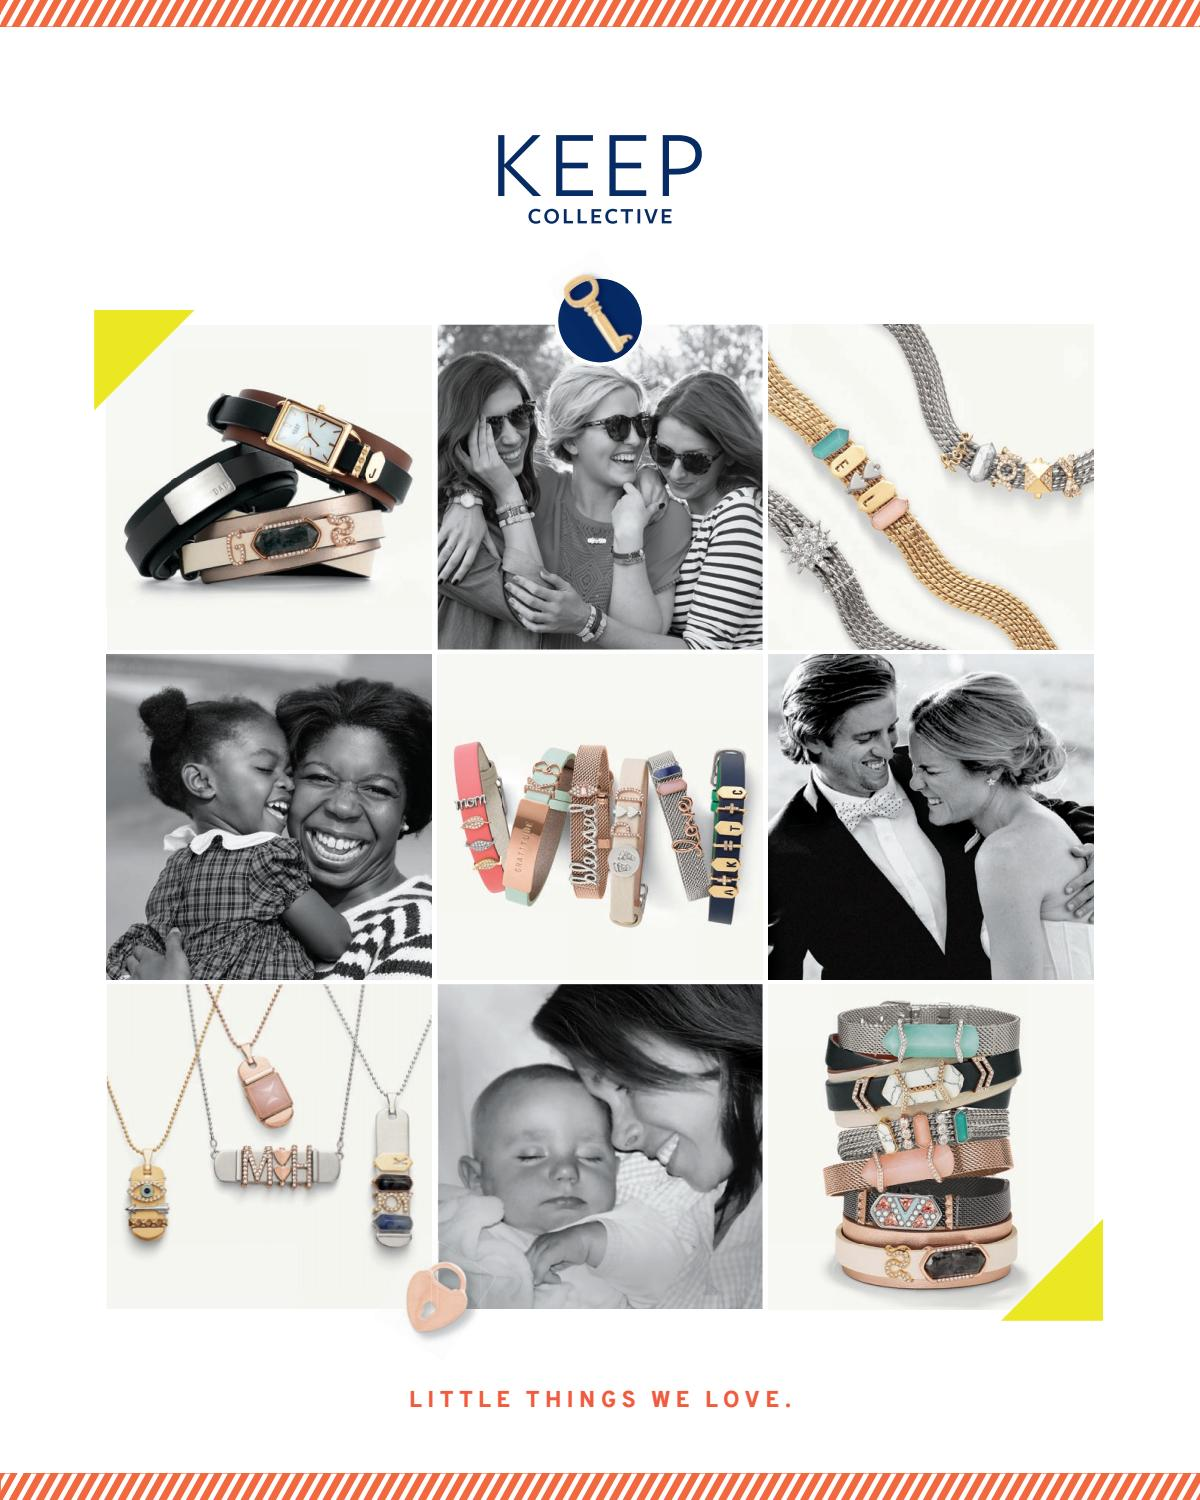 995dc542d6 KEEP Spring & Summer 2016 by KEEP Collective - issuu